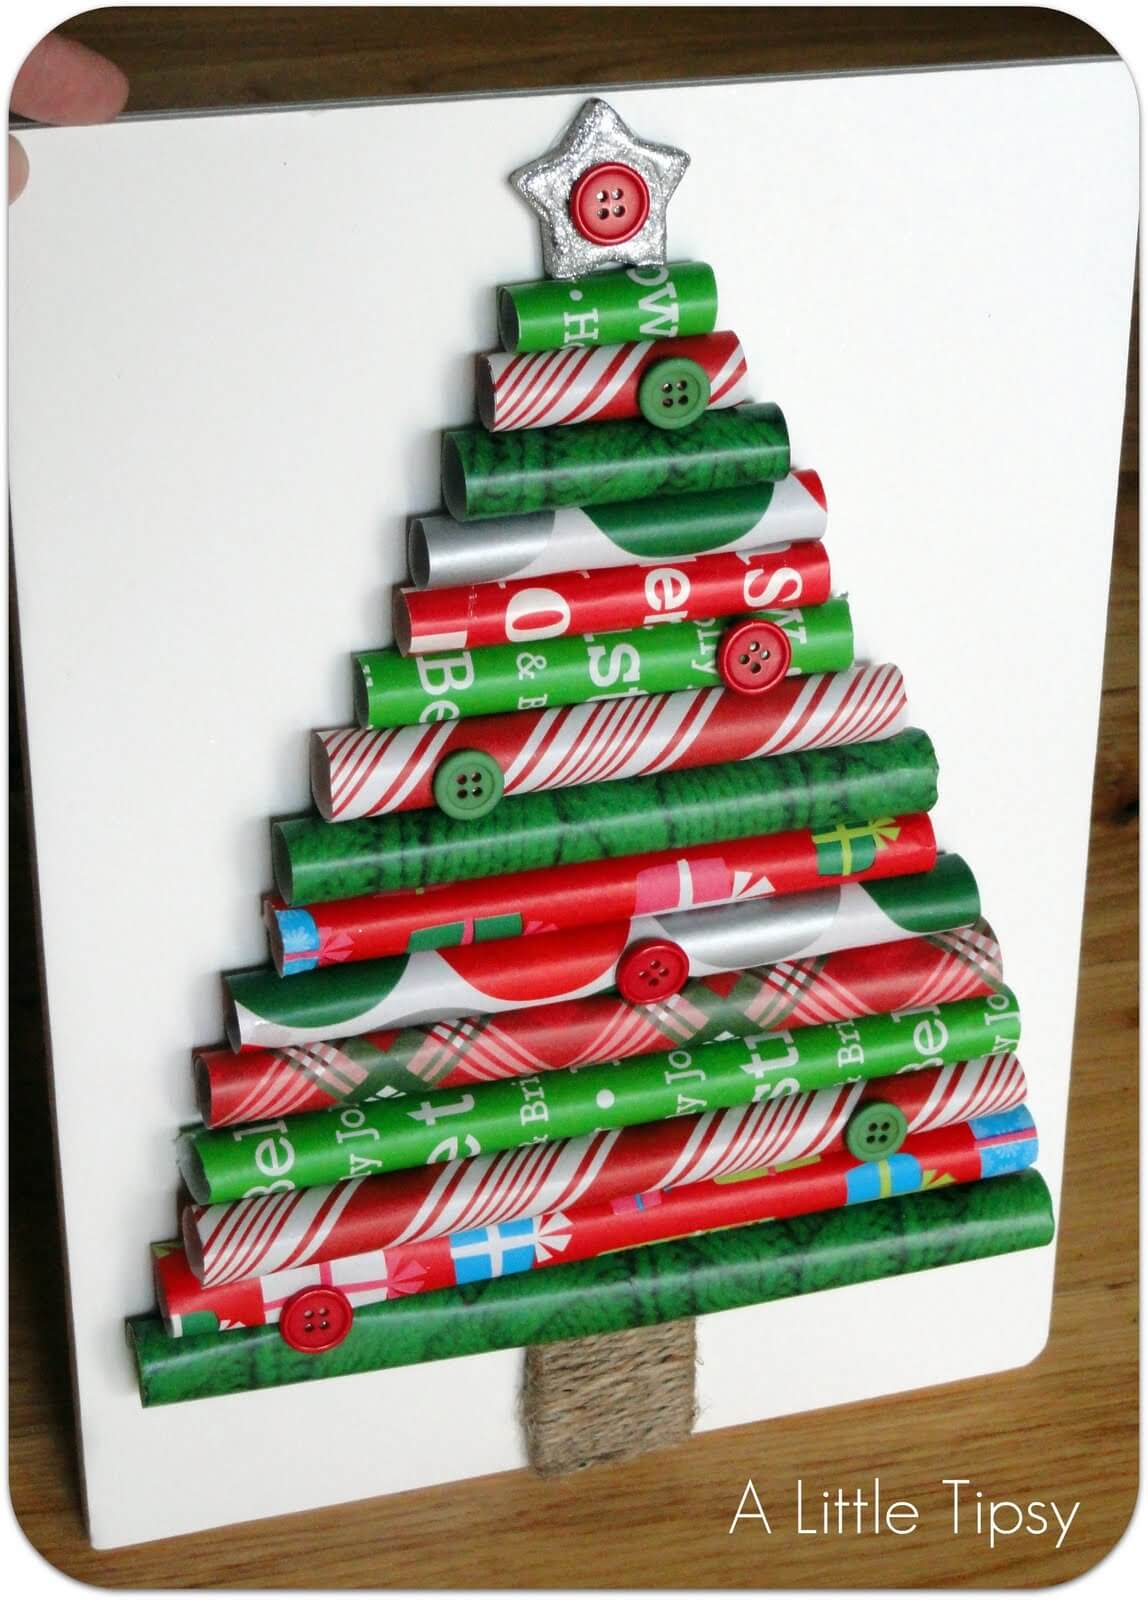 Save your extra wrapping paper for holiday decor